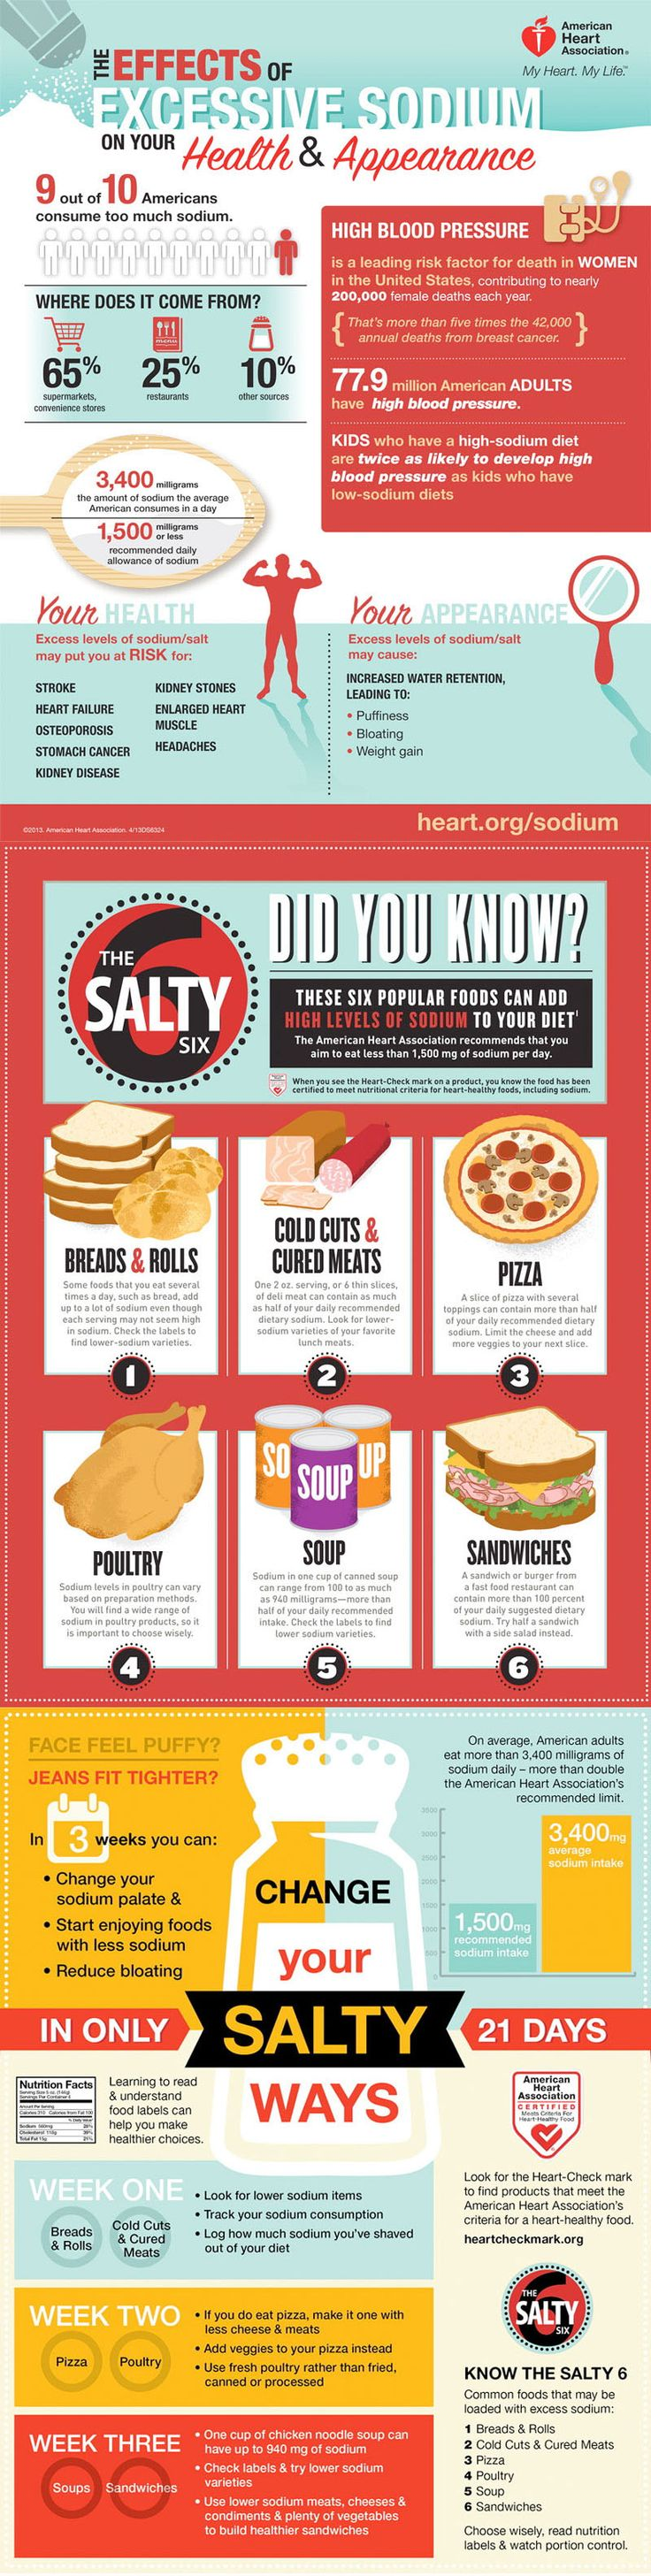 480 mg per serving is too high. The Effects of Sodium on your Health and Appearance